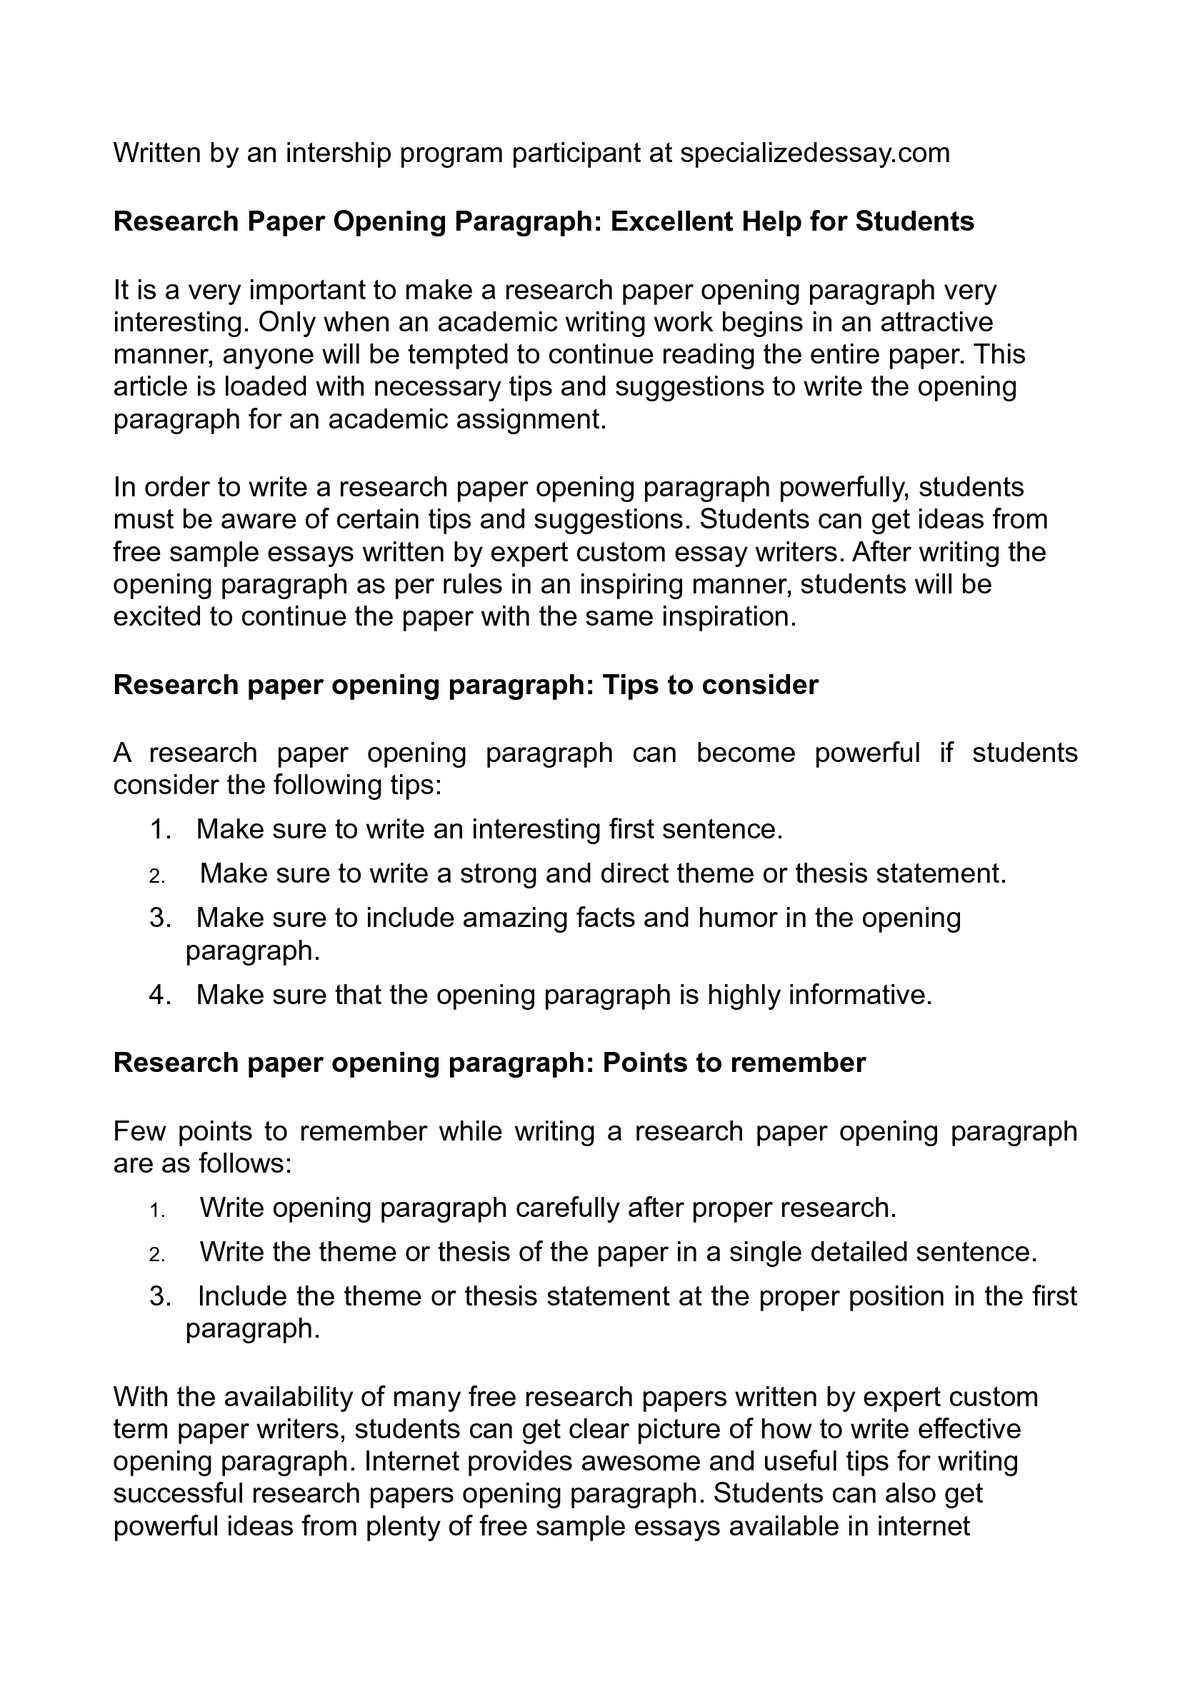 003 P1 Opening Statements For Essays Essay Unusual Starting Lines General Statement Examples Full